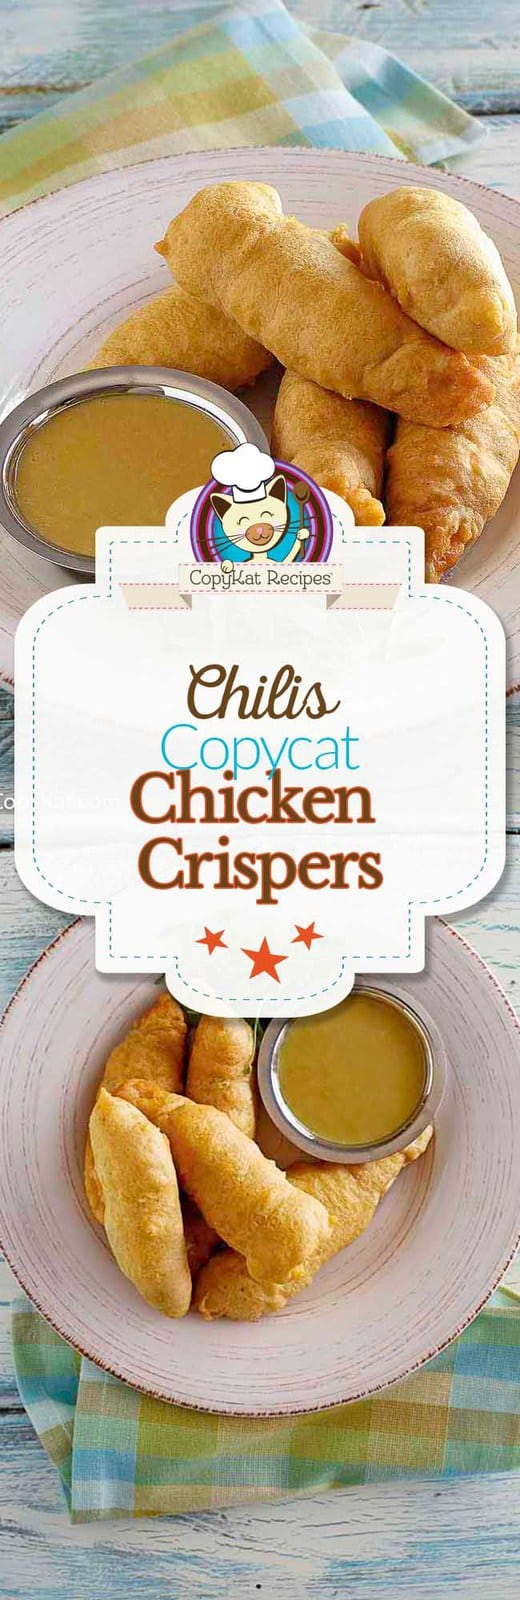 Recreate Chilis Chicken Crispers at home with this easy copycat recipe.